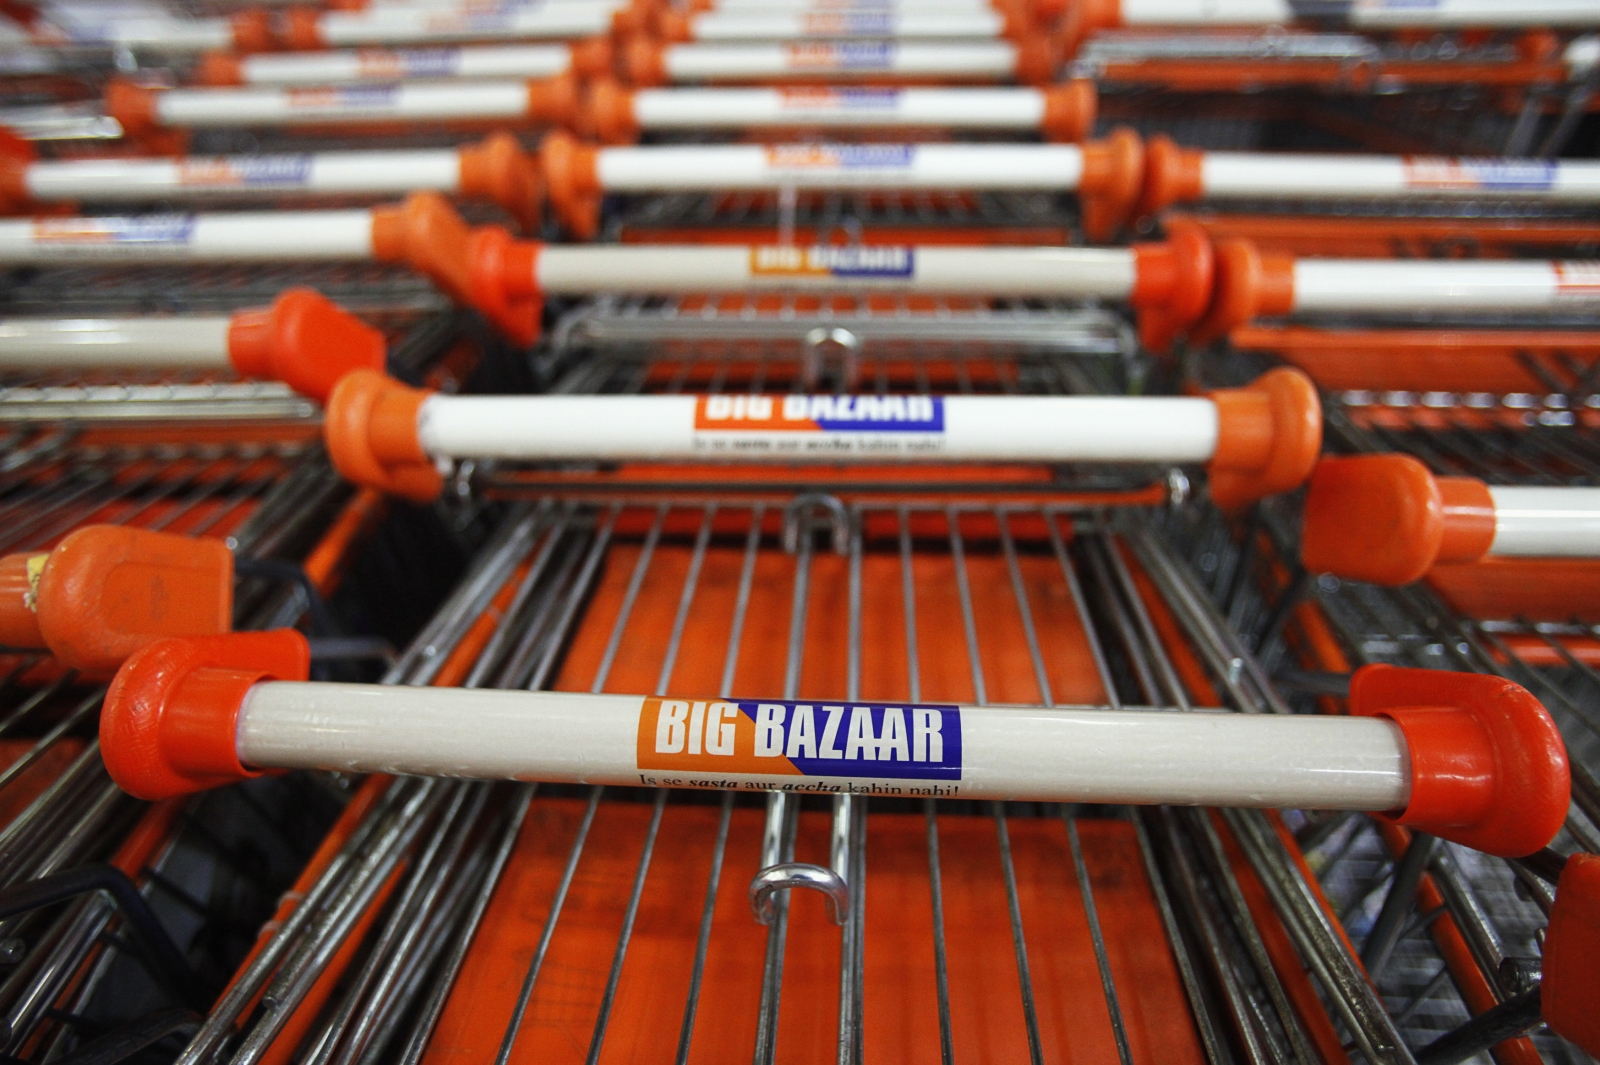 Big Bazaar retail store